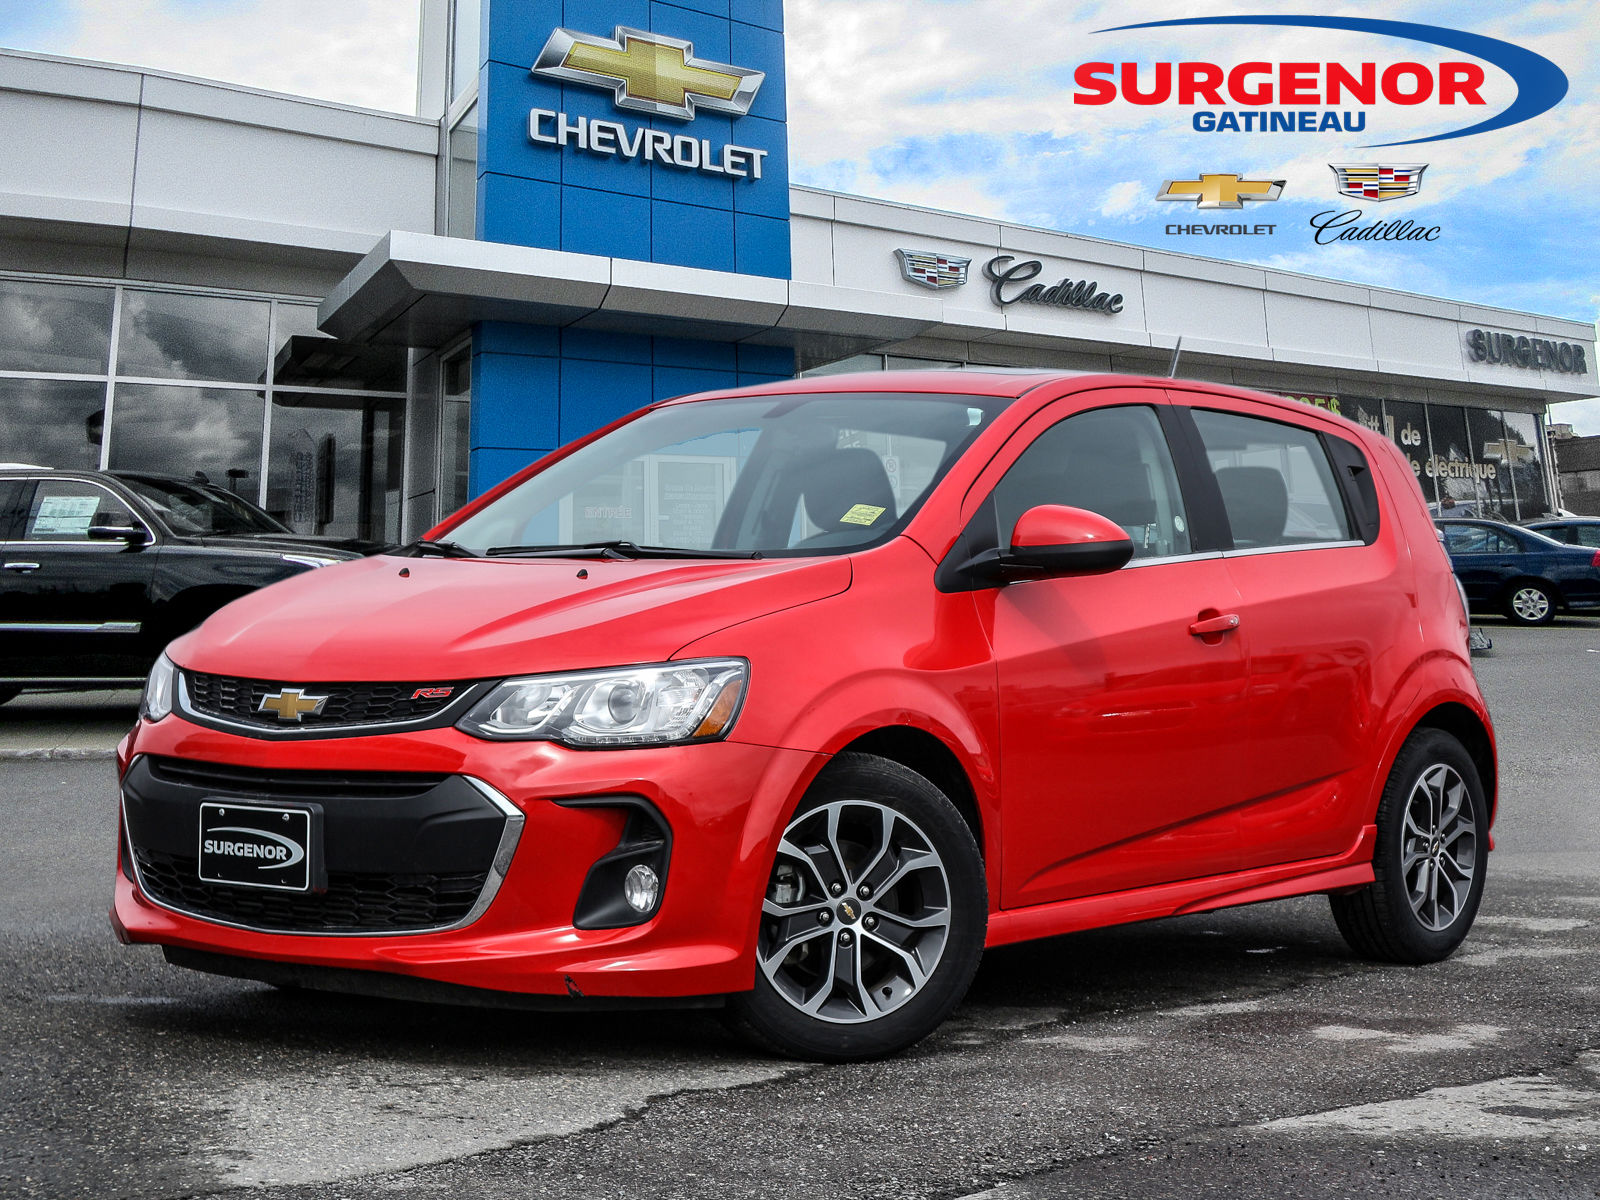 Smart 5 Portes Used 2017 Chevrolet Sonic Rs 5 Portes Toit Auto Air Bluetooh Roof